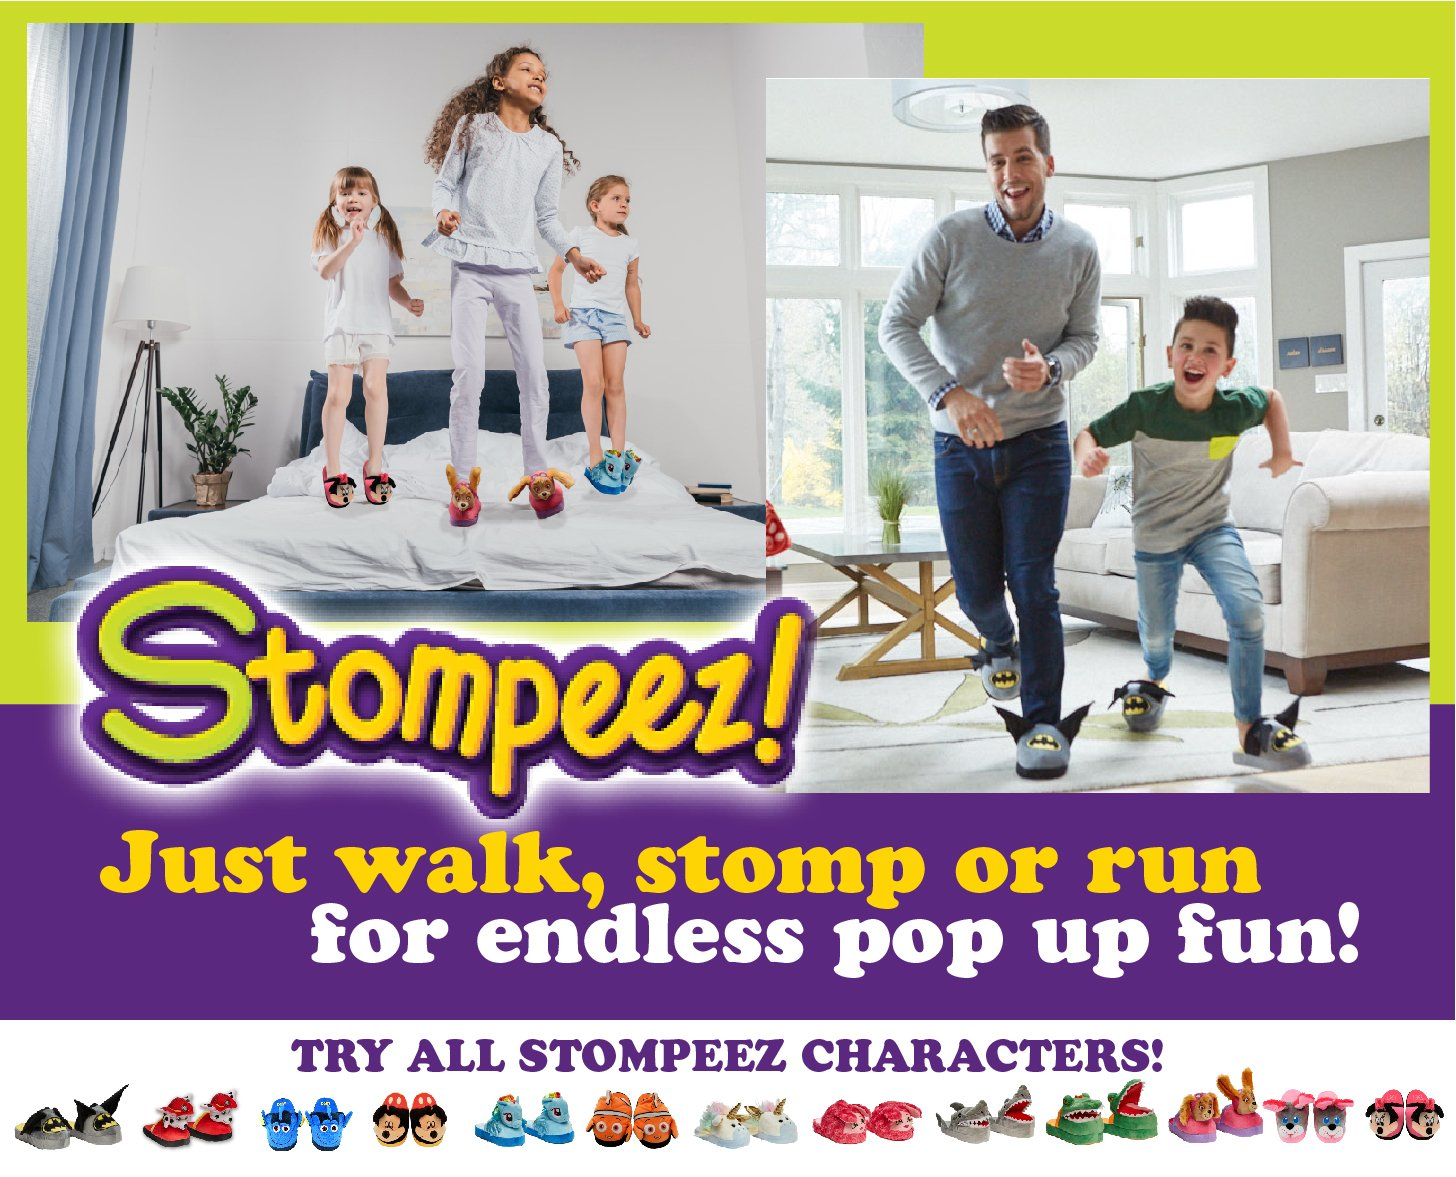 Stompeez Animated Dory Plush Slippers - Ultra Soft and Fuzzy - Fins Flap and Flutter as You Walk - Large by Stompeez (Image #5)